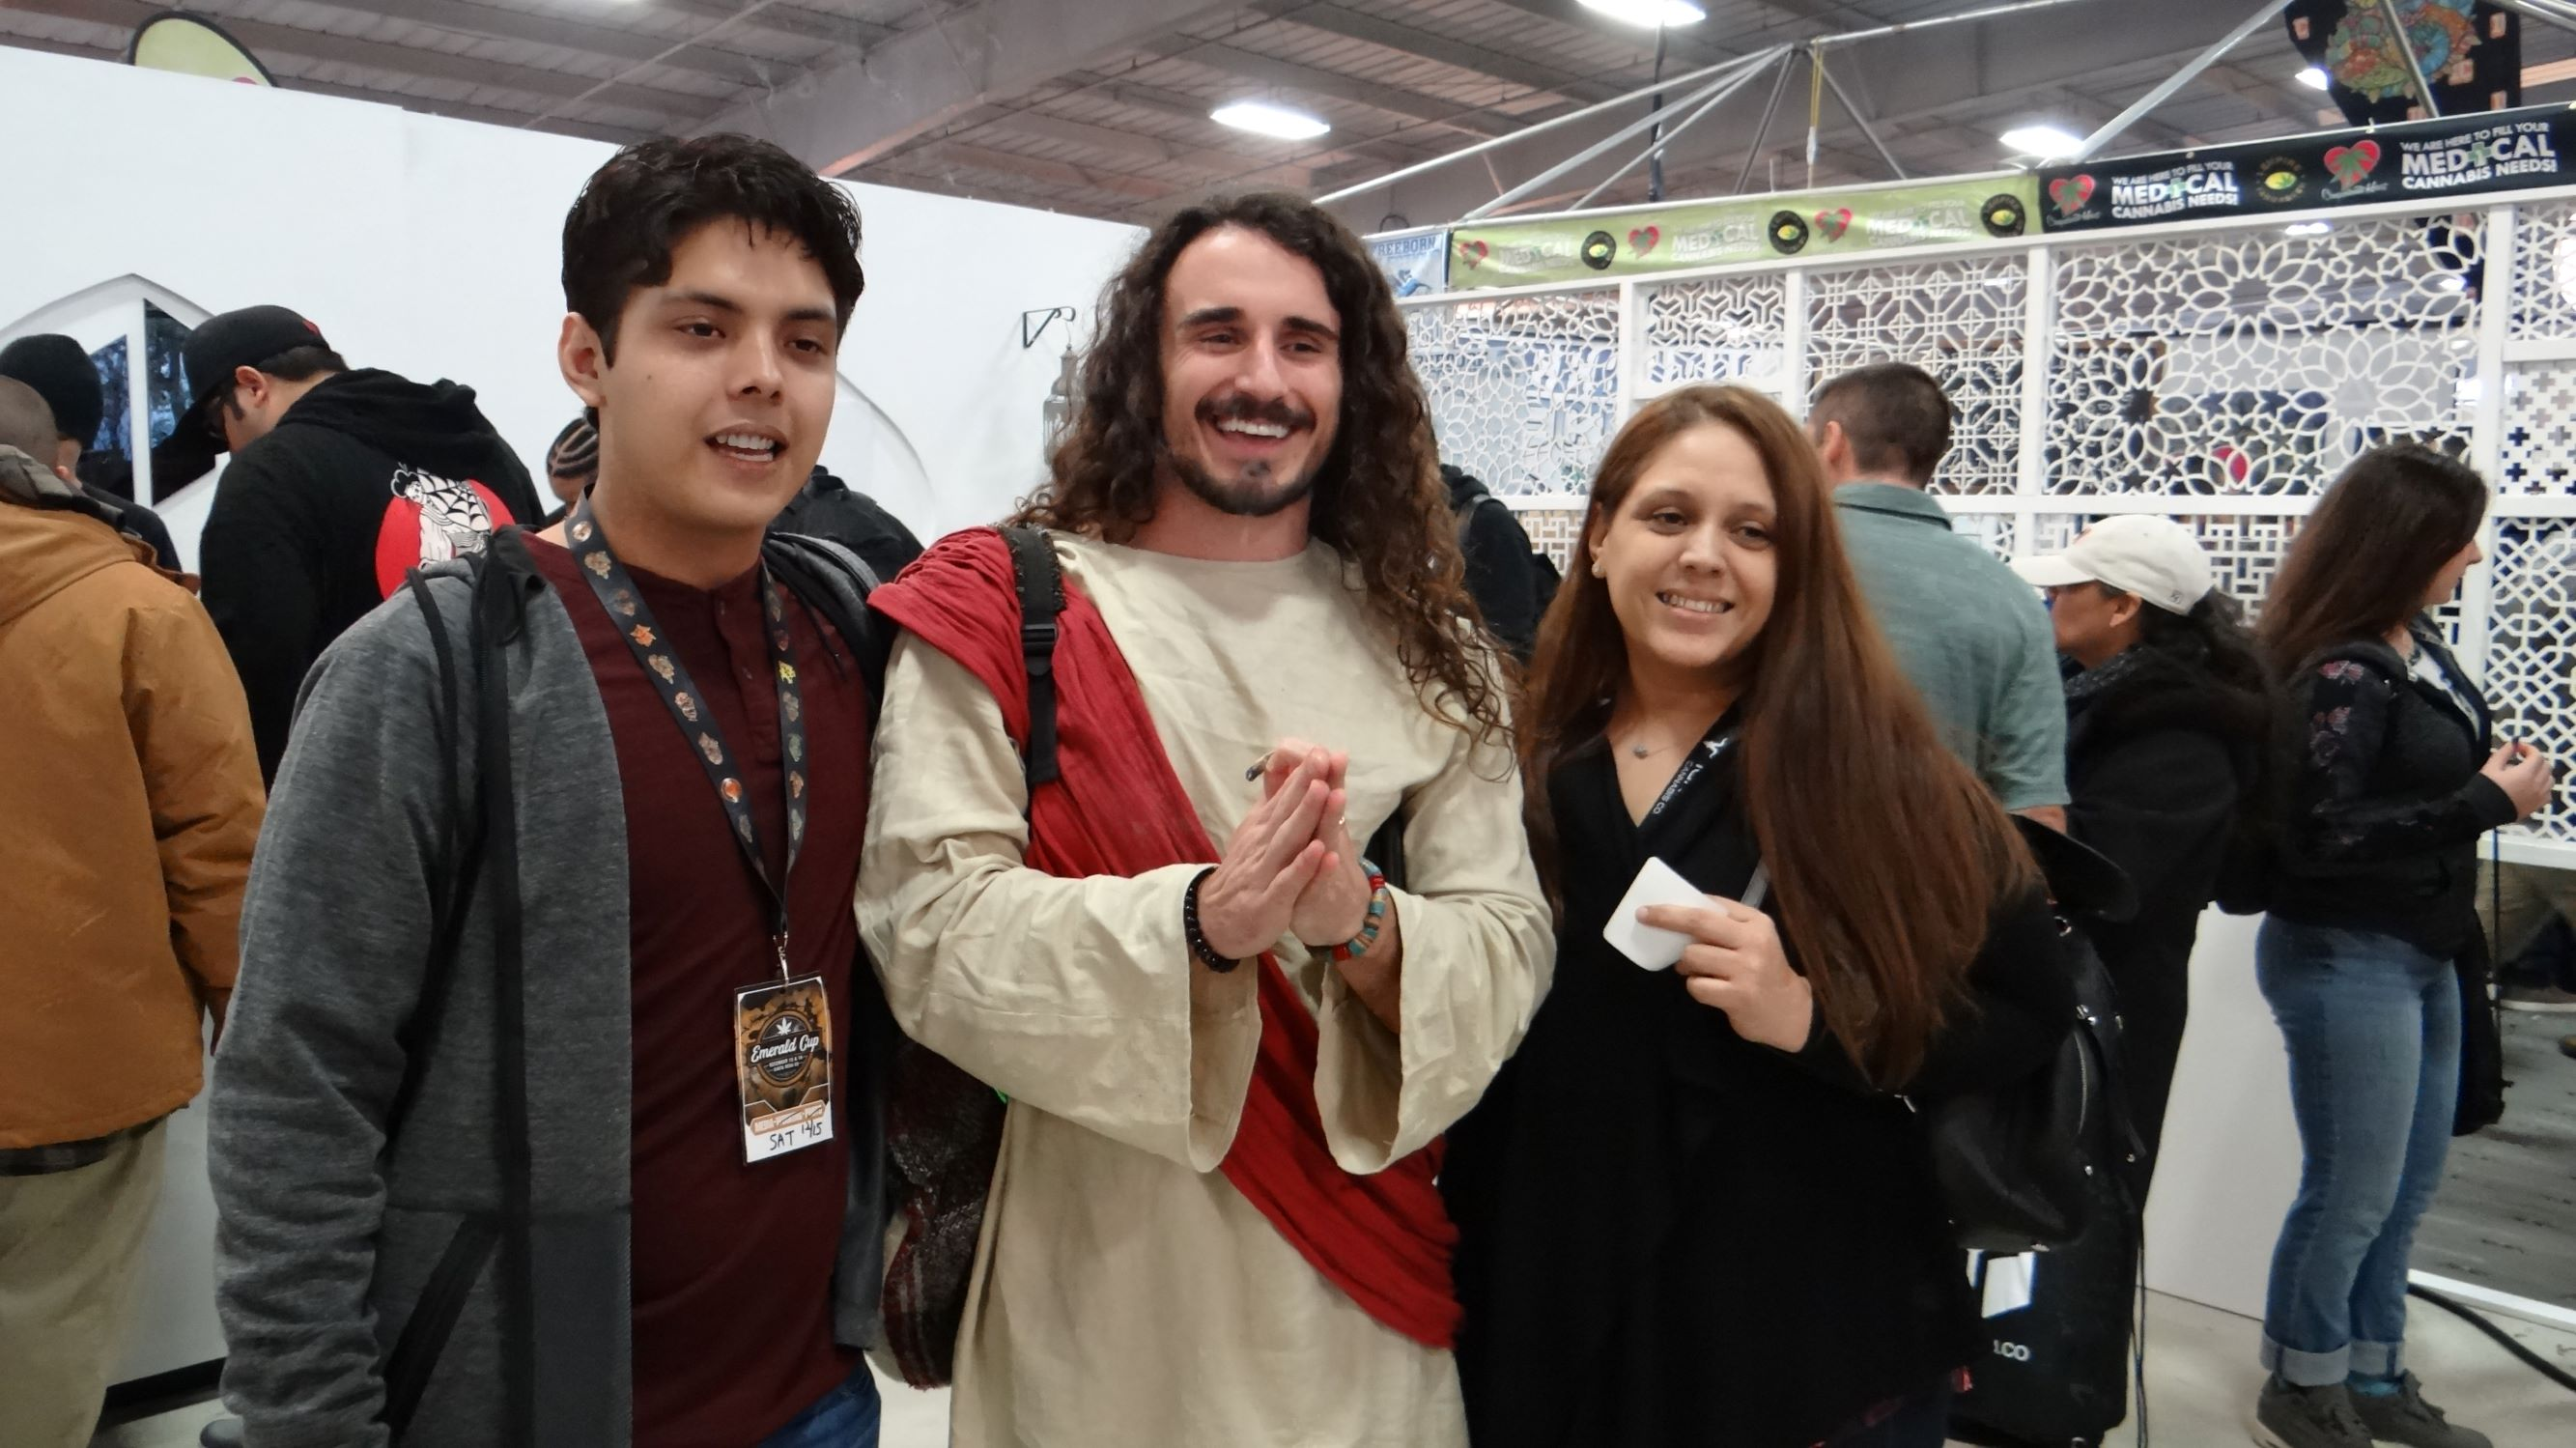 The weed Jesus with fans